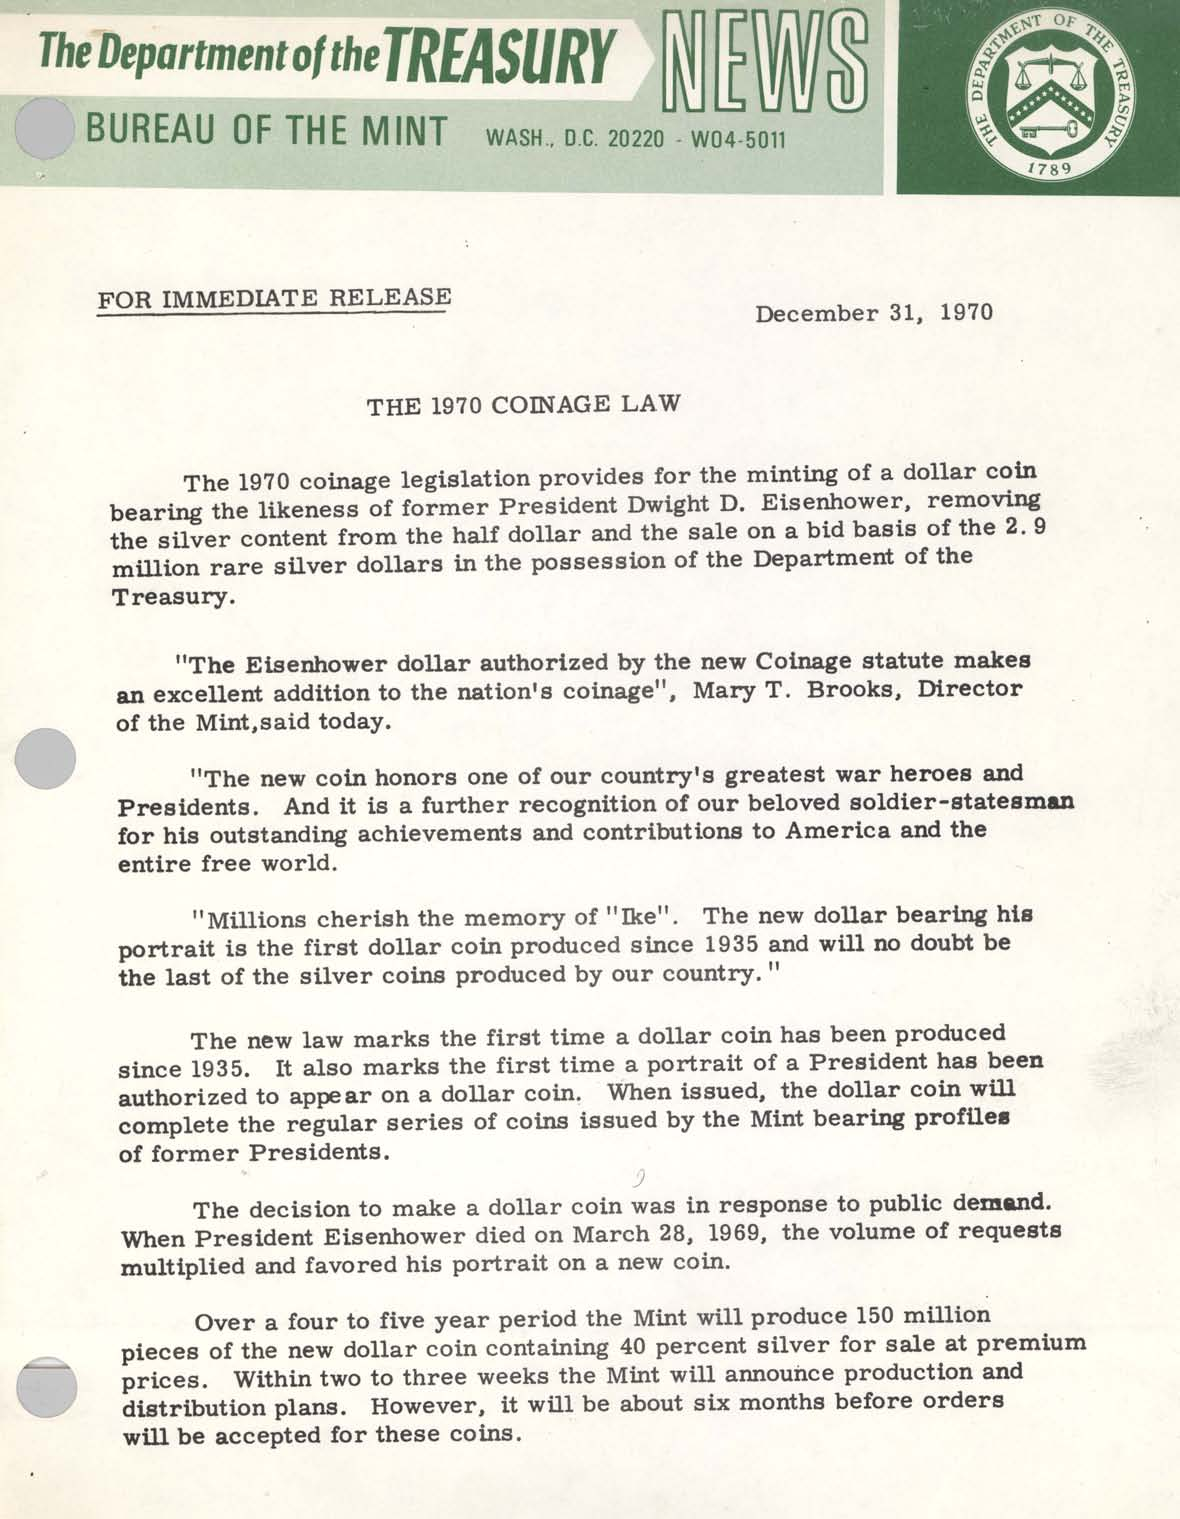 Historic Press Release: 1970 Coinage Law, Page 1